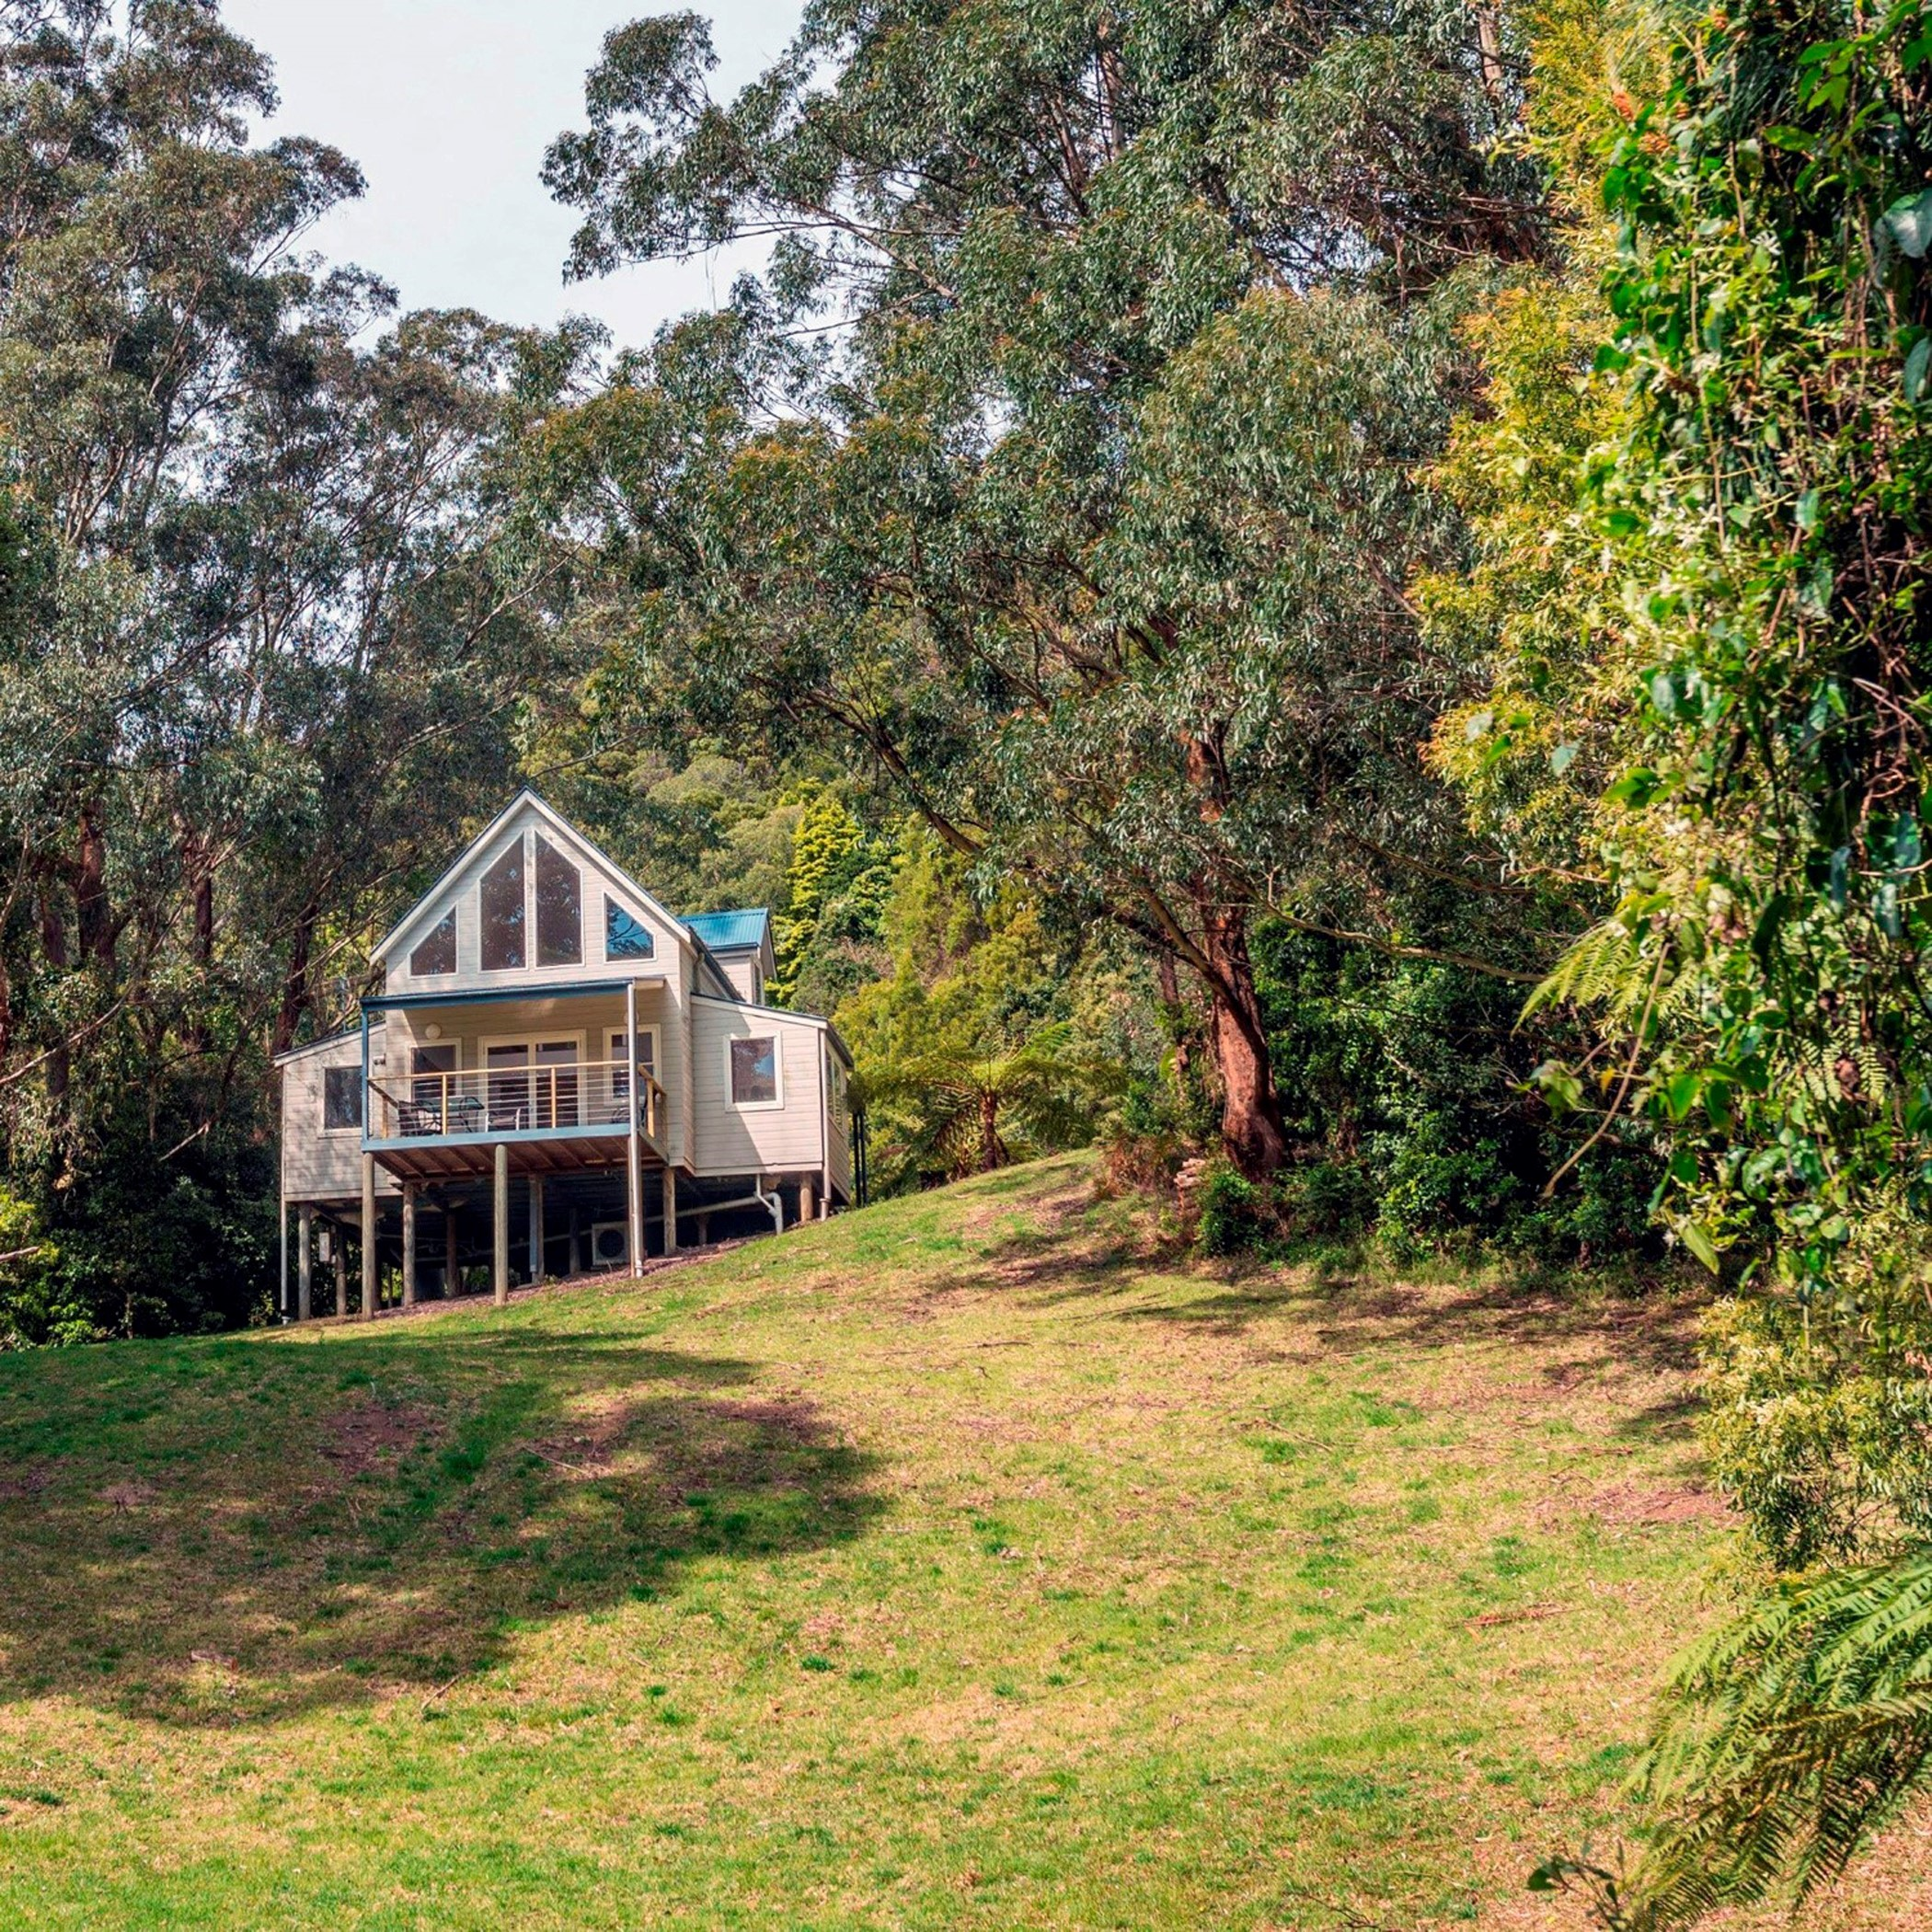 Rainforest Lodge - view of lodge from below